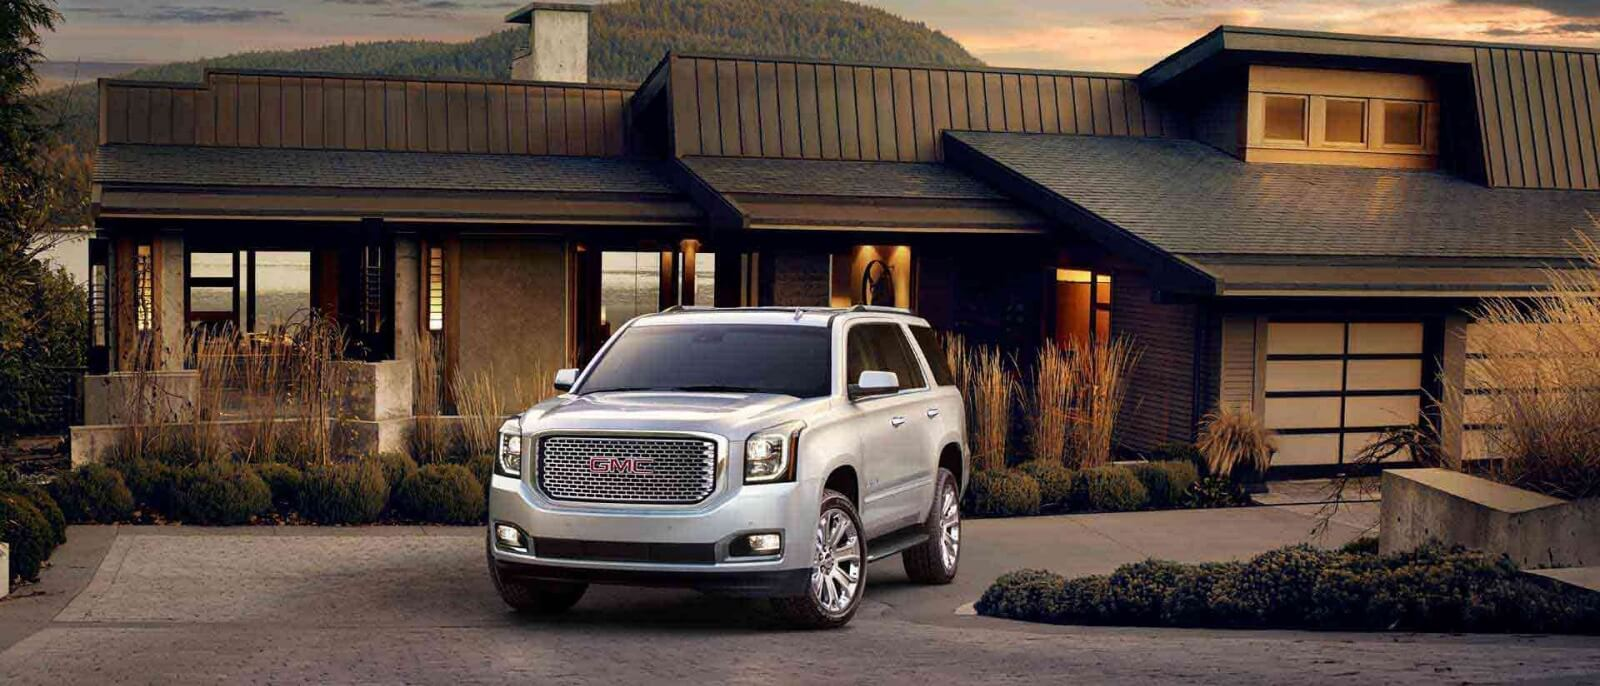 2017 GMC Yukon Denali white exterior model